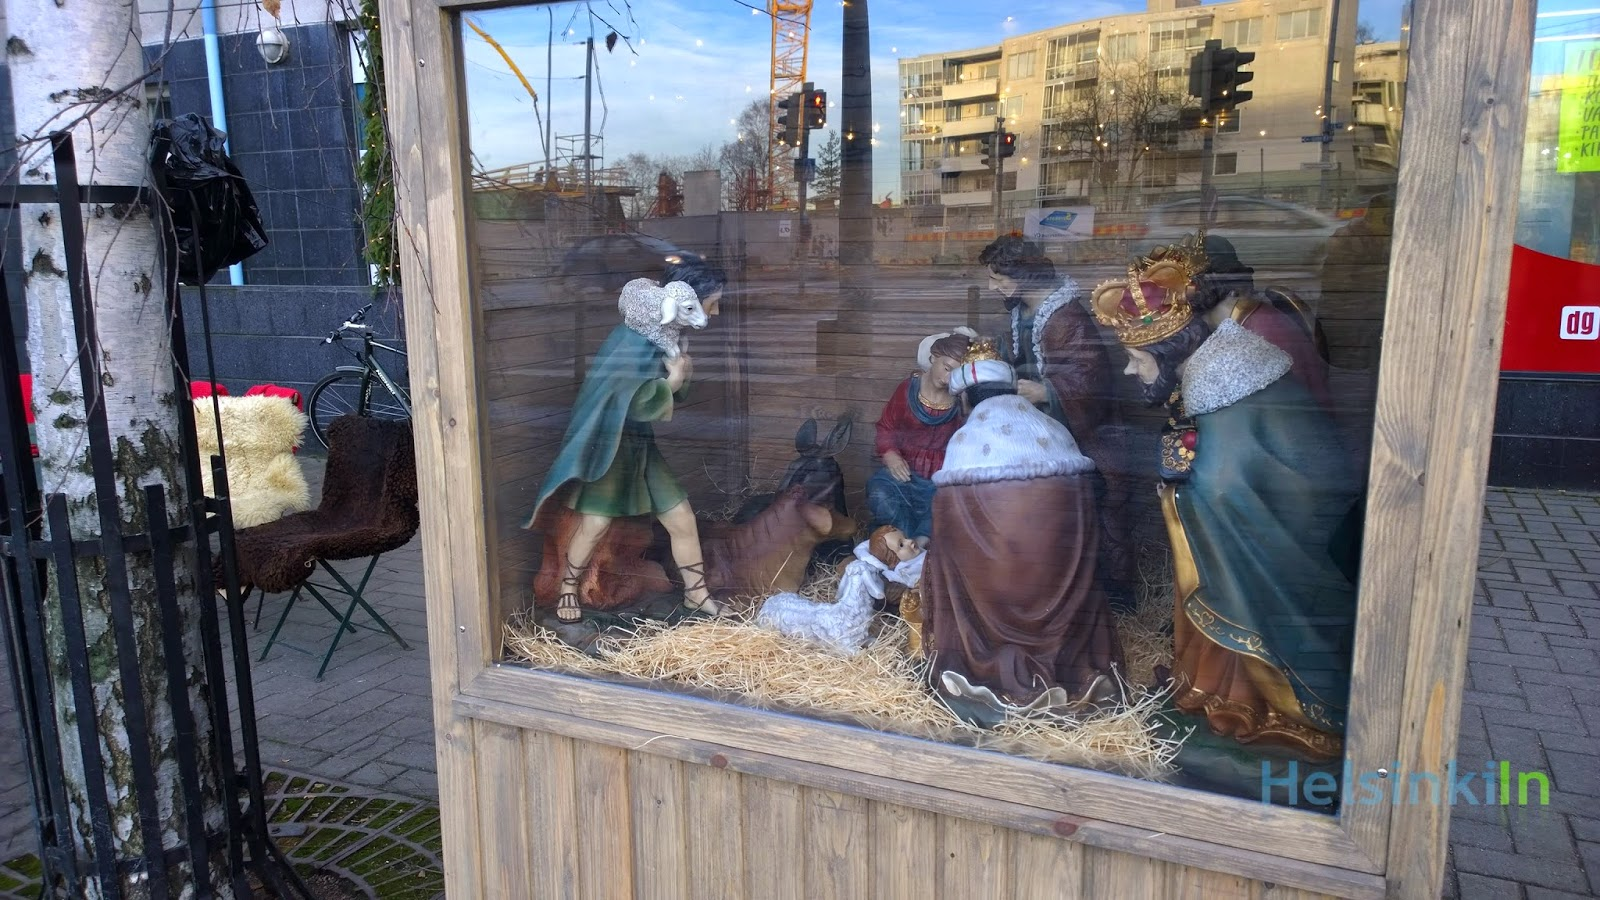 Nativity scene in Lauttasaari